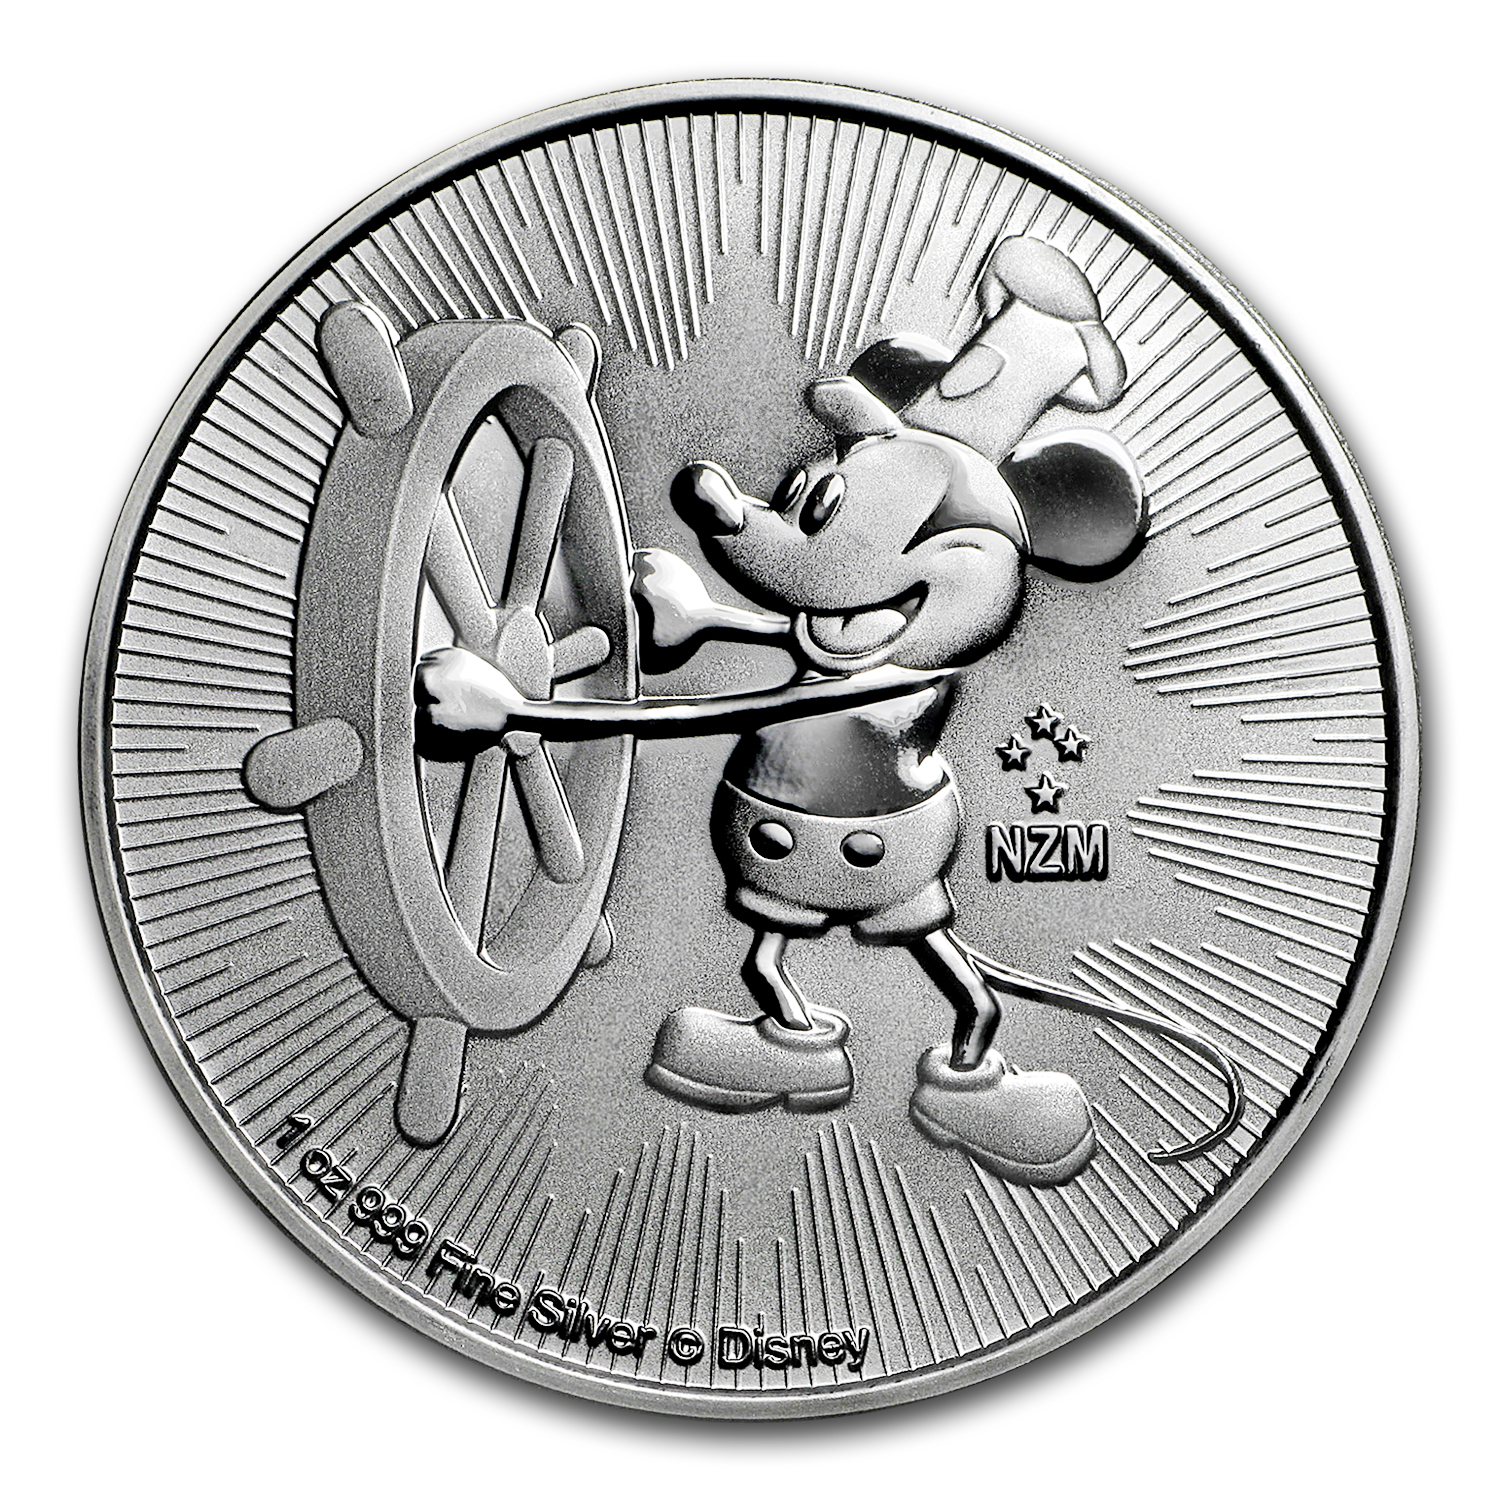 2017 Niue 1 oz Silver $2 Steamboat Willie (MintDirect® Single)